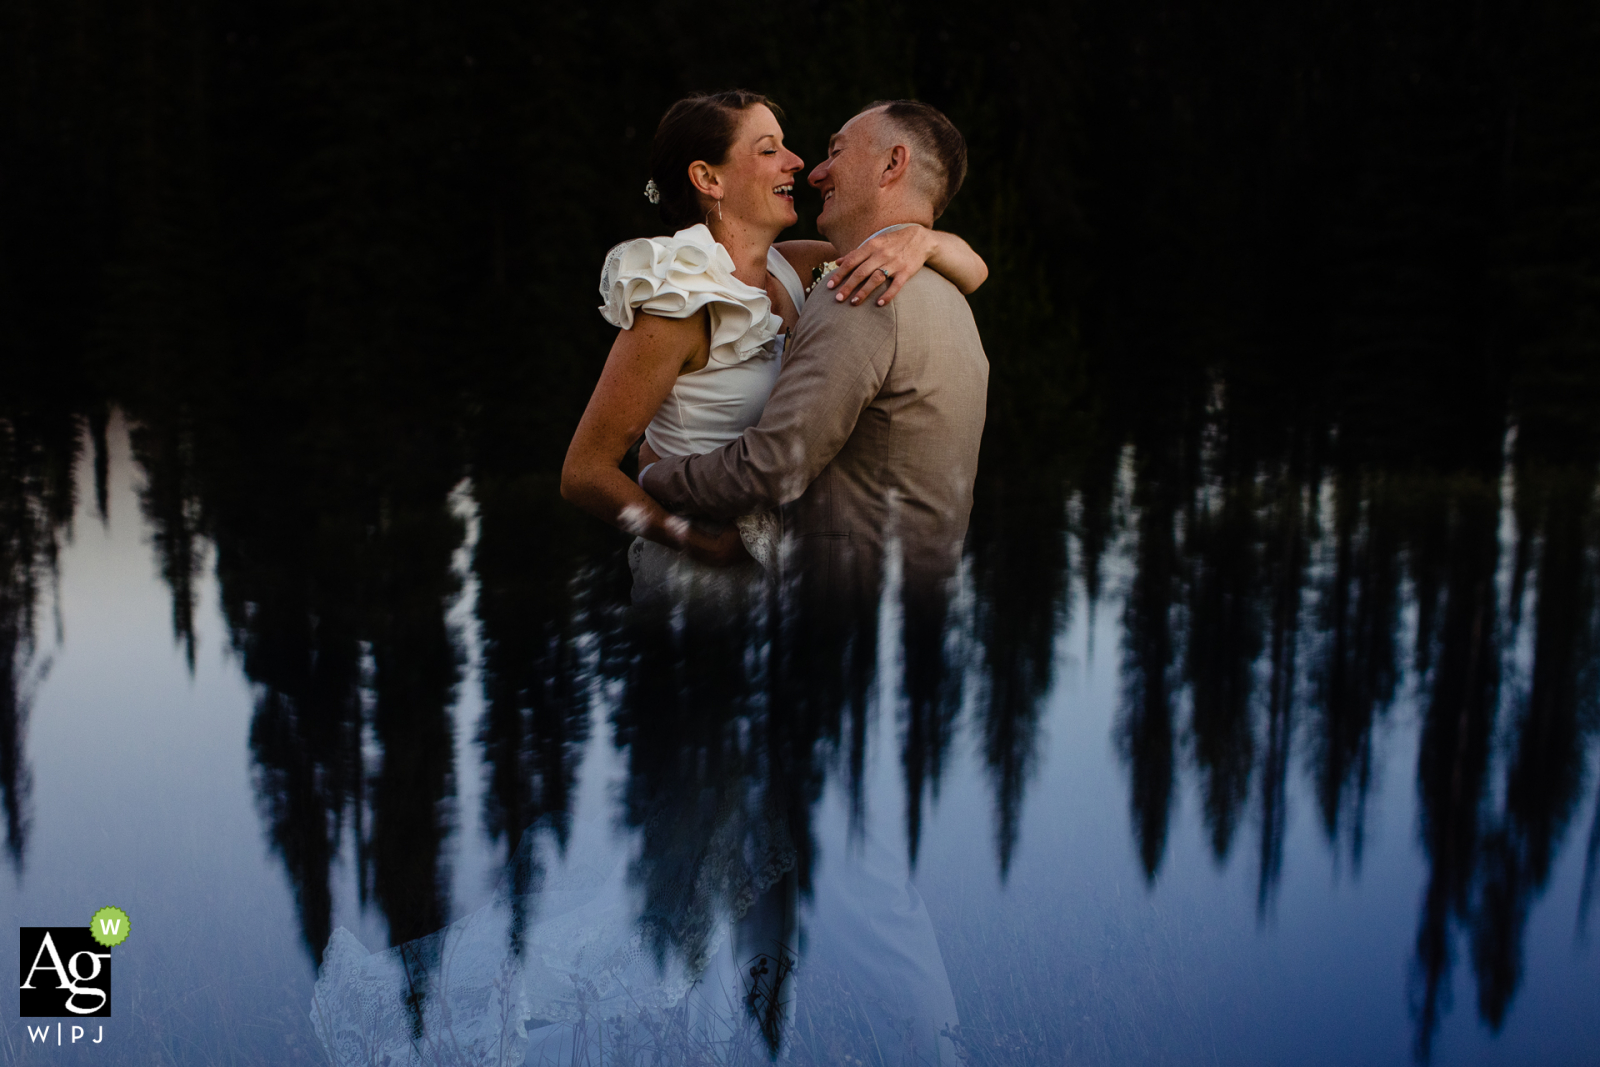 Lolo Pass, Idaho fine art wedding portrait image of the bride/groom with some trees and a great reflection